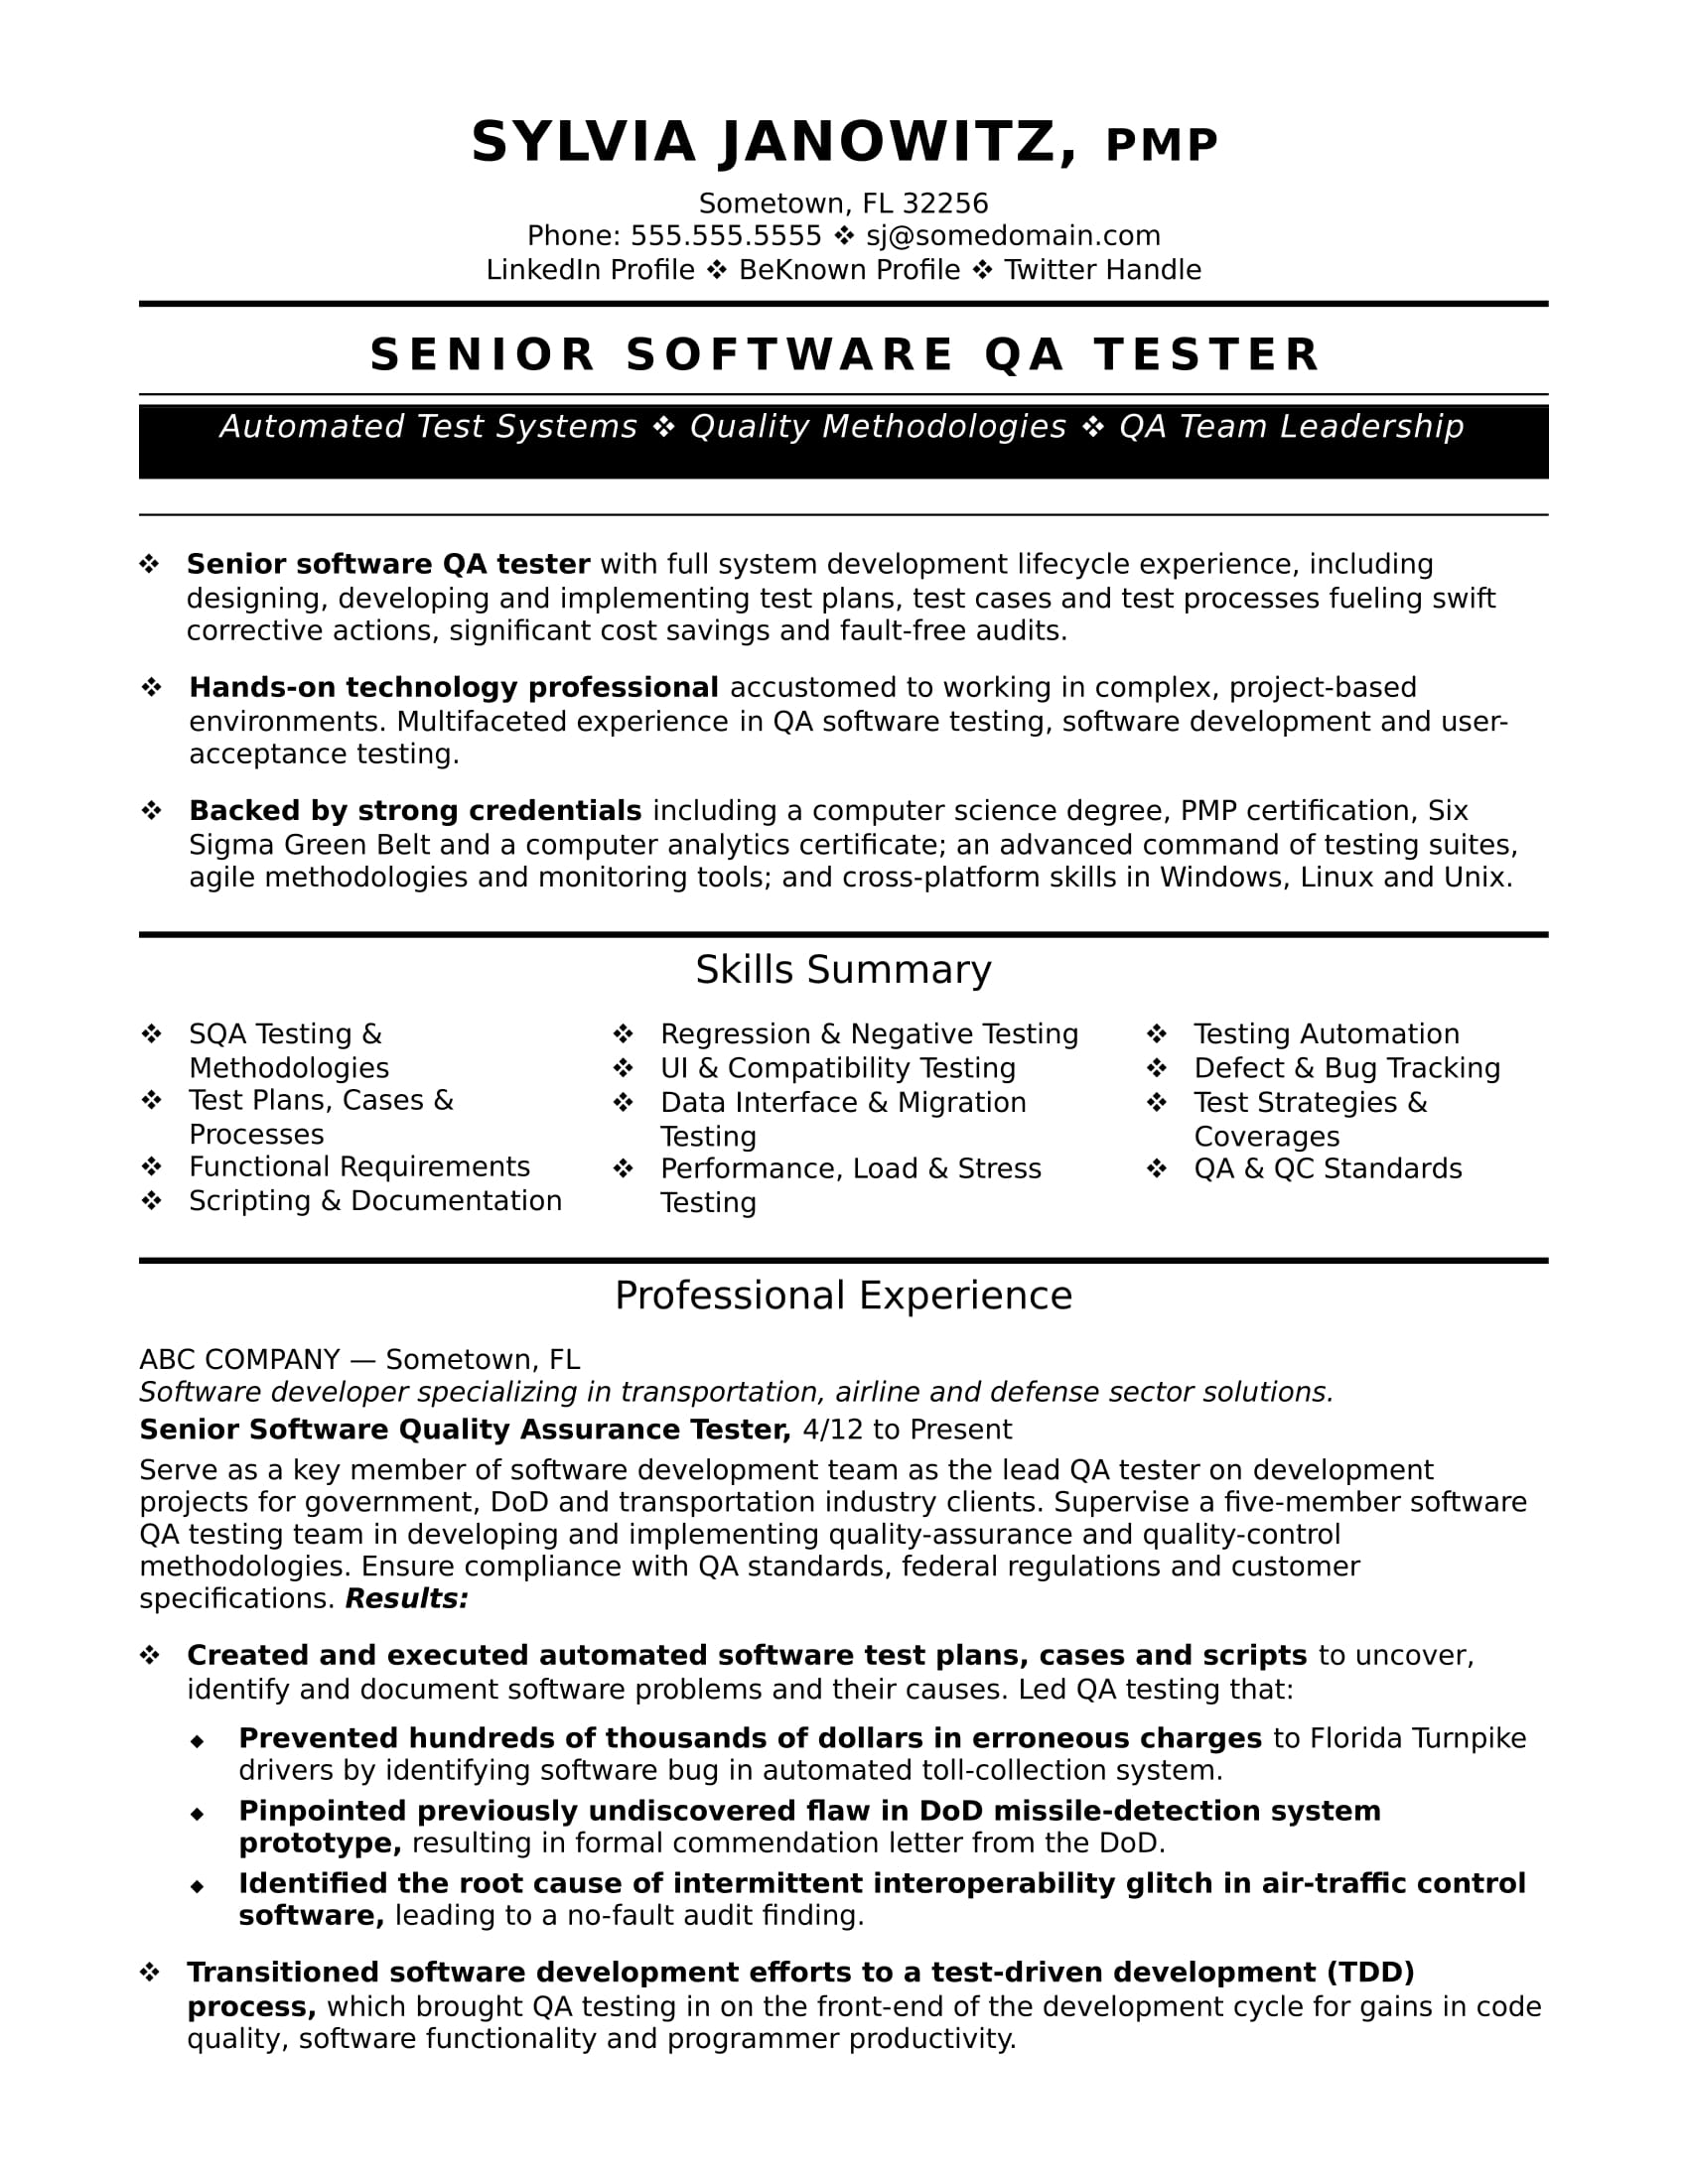 experienced qa software tester resume sample monster examples for quality control mergers Resume Resume Examples For Quality Control